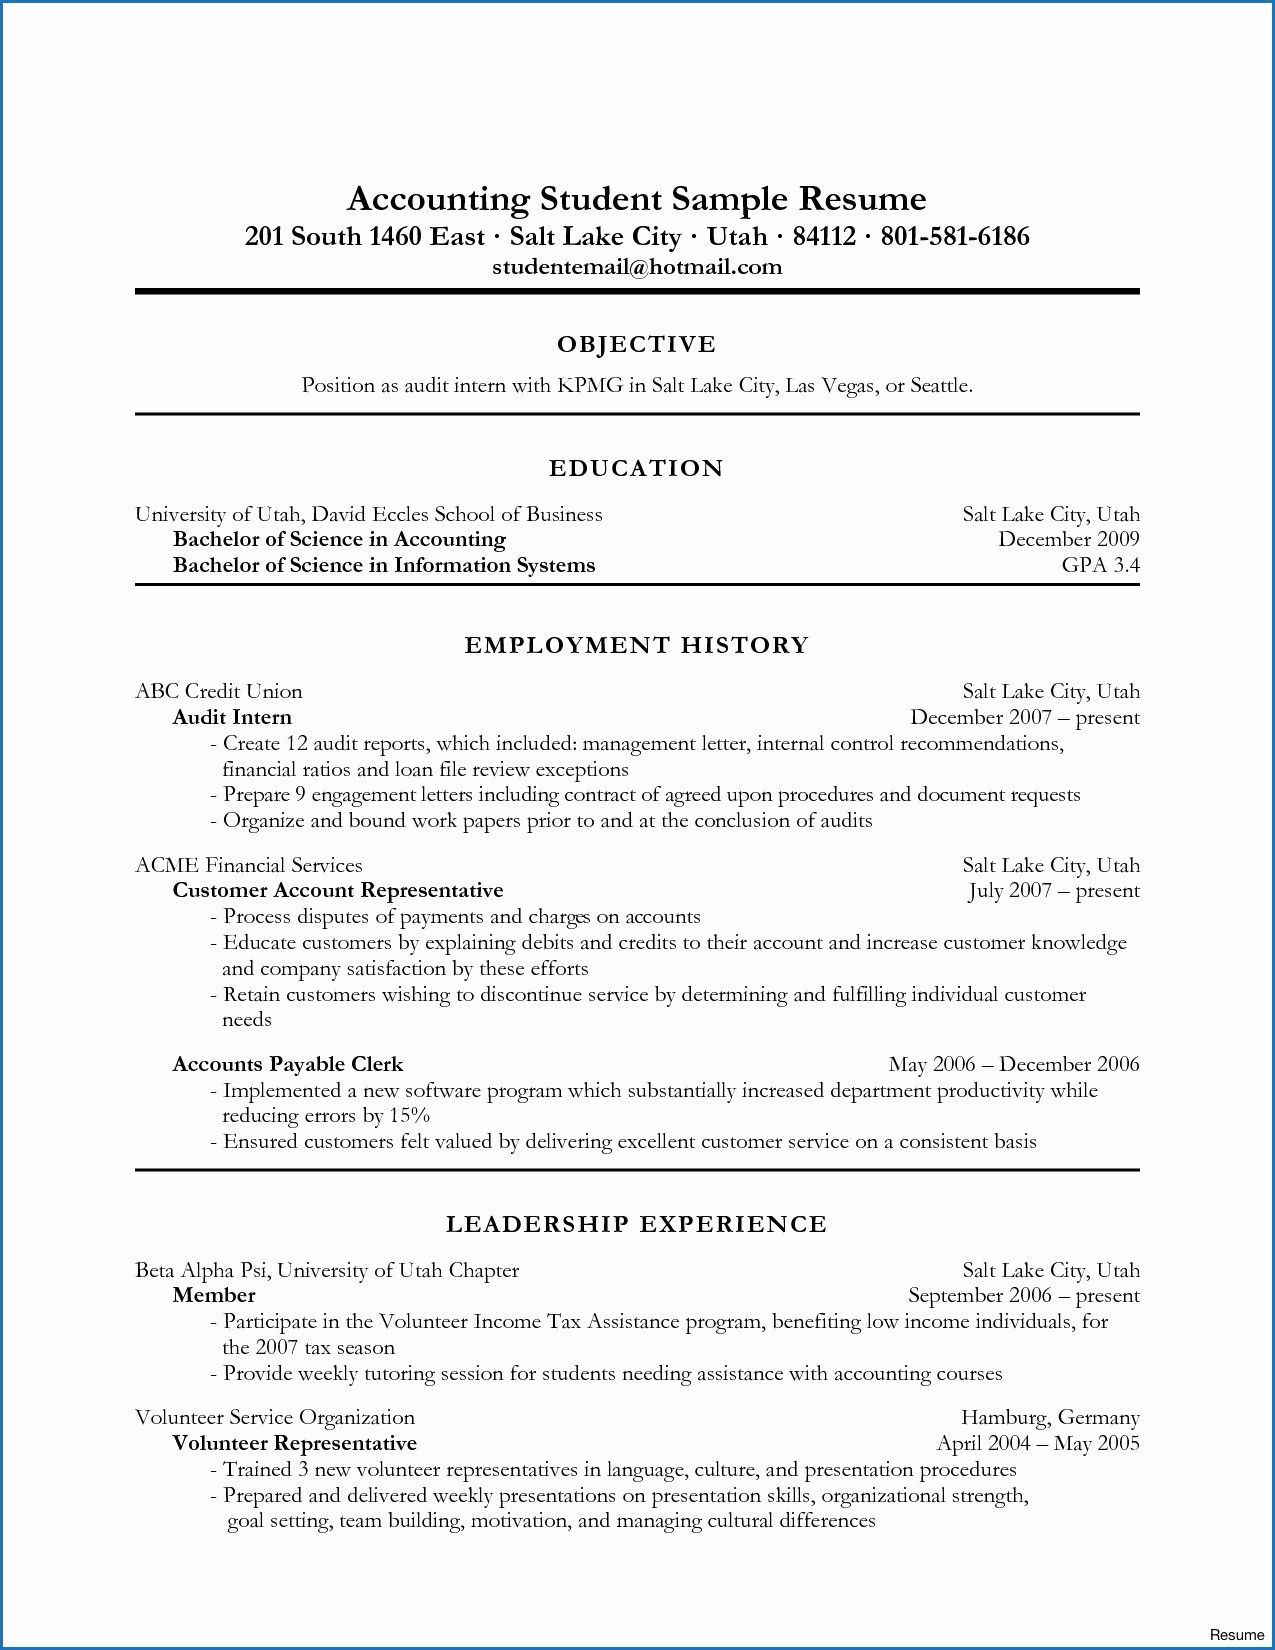 to write resume objective for internship is statement computer vision engineer icon pack Resume Resume Objective Statement For Internship